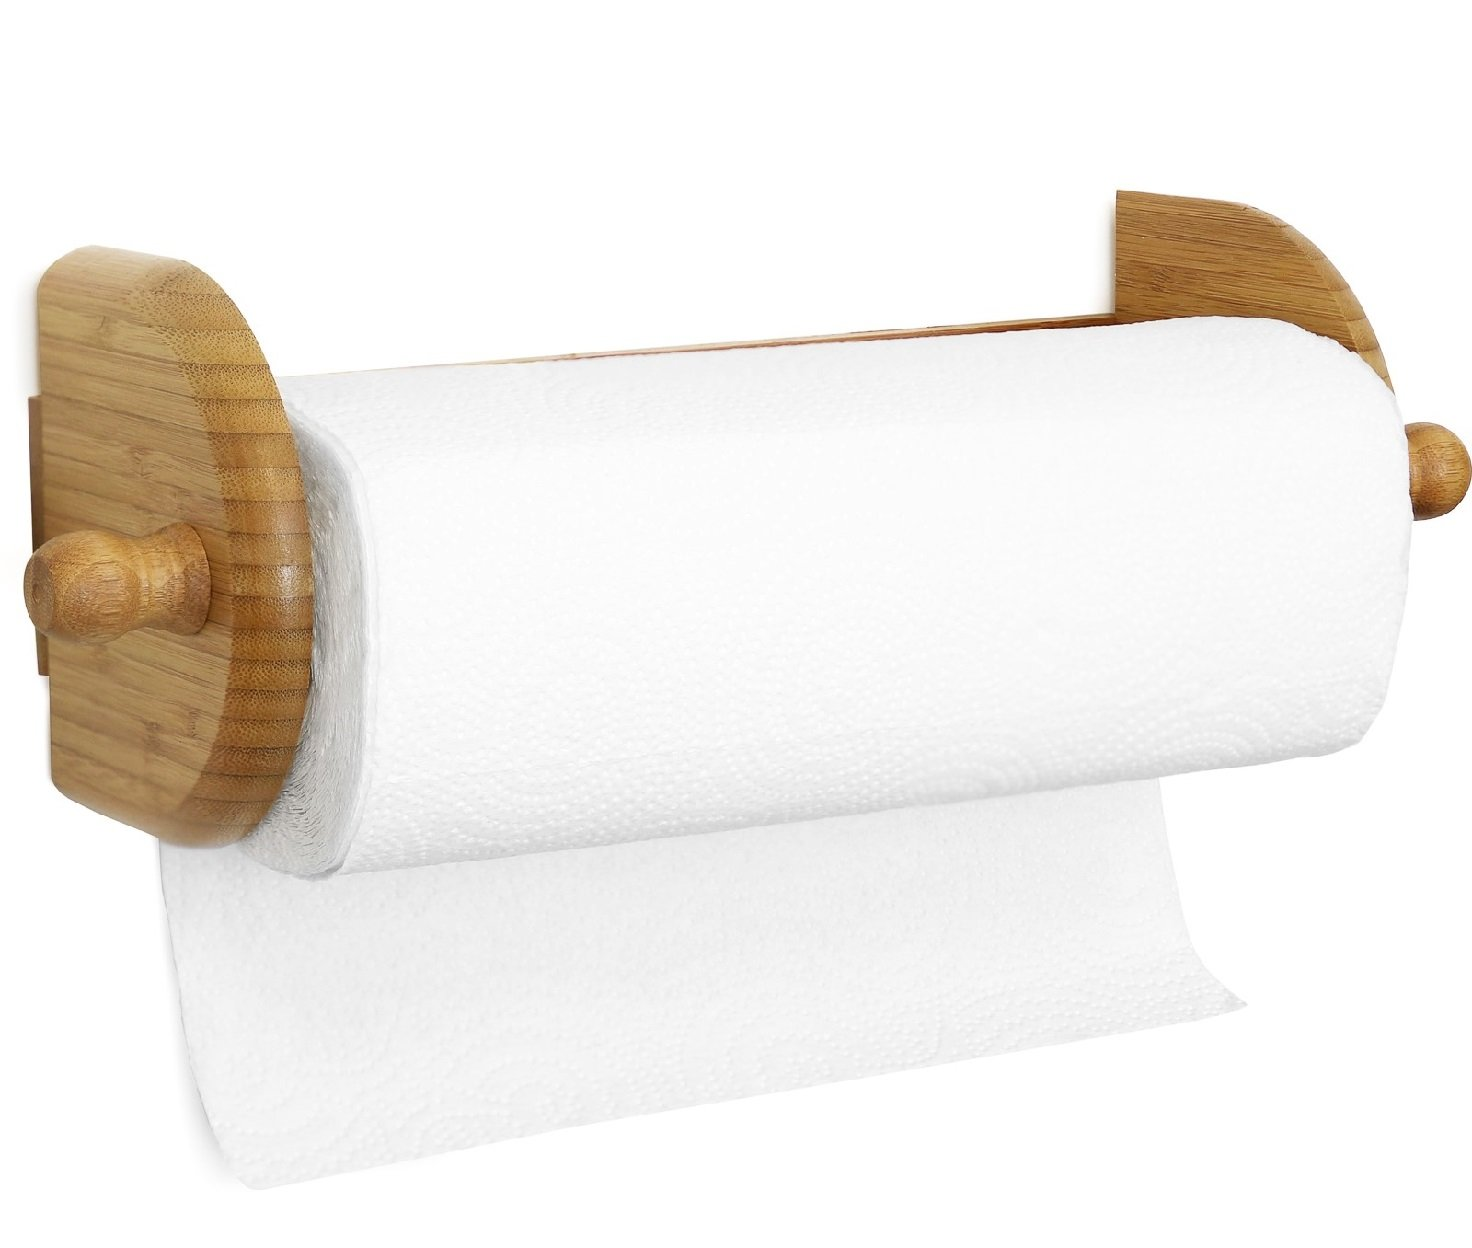 Amazoncom Greenco Premium Bamboo Wall Mount Paper Towel Holder